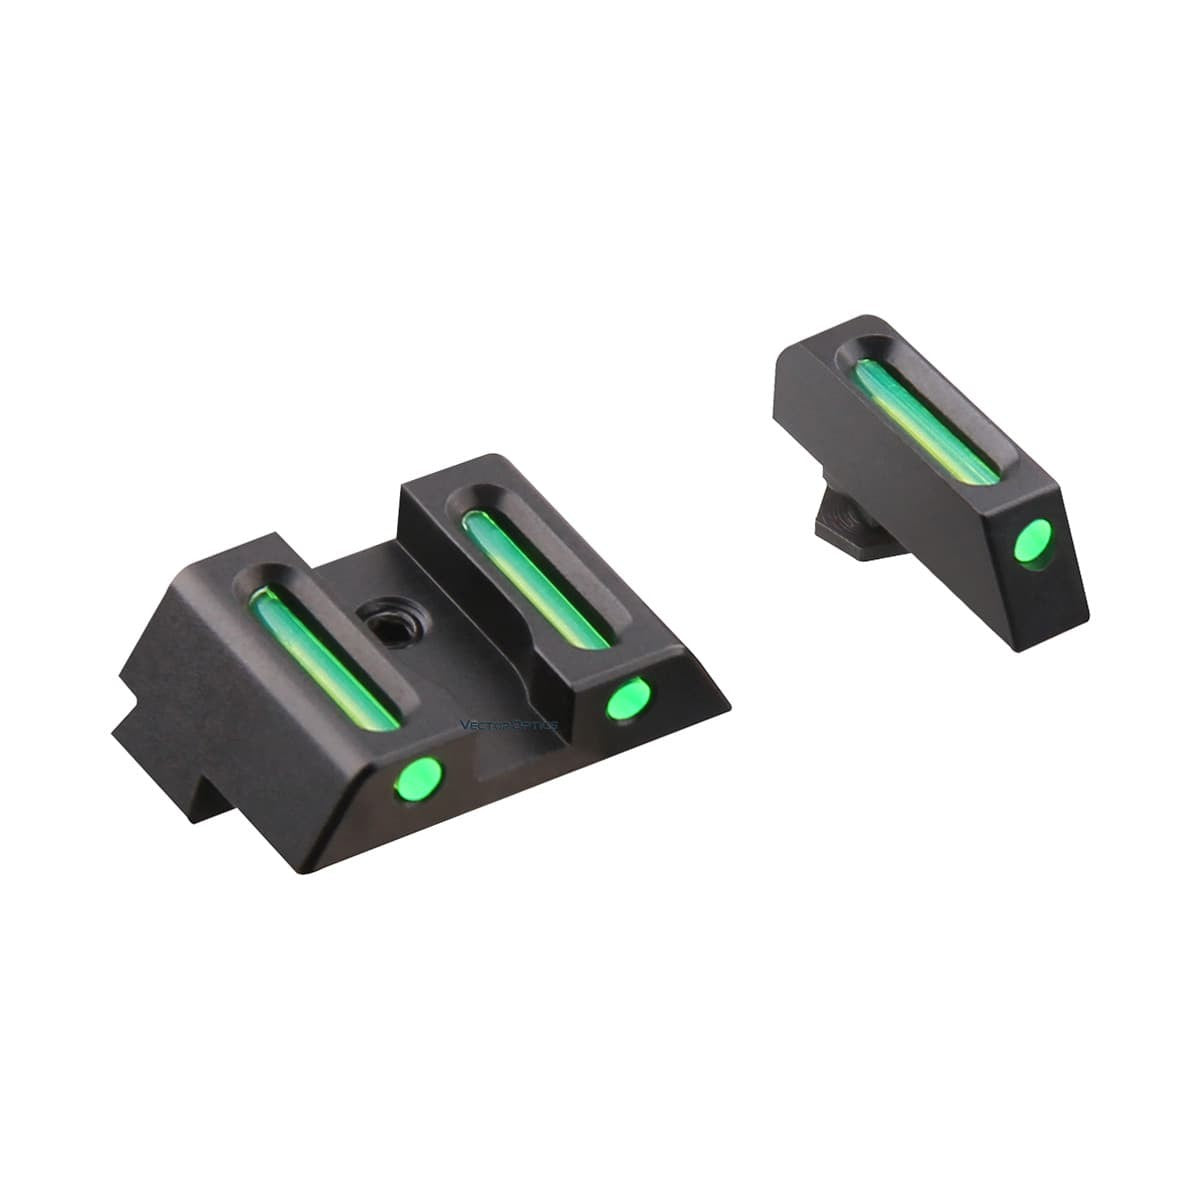 LA Fiber Sights Combo for Pistol